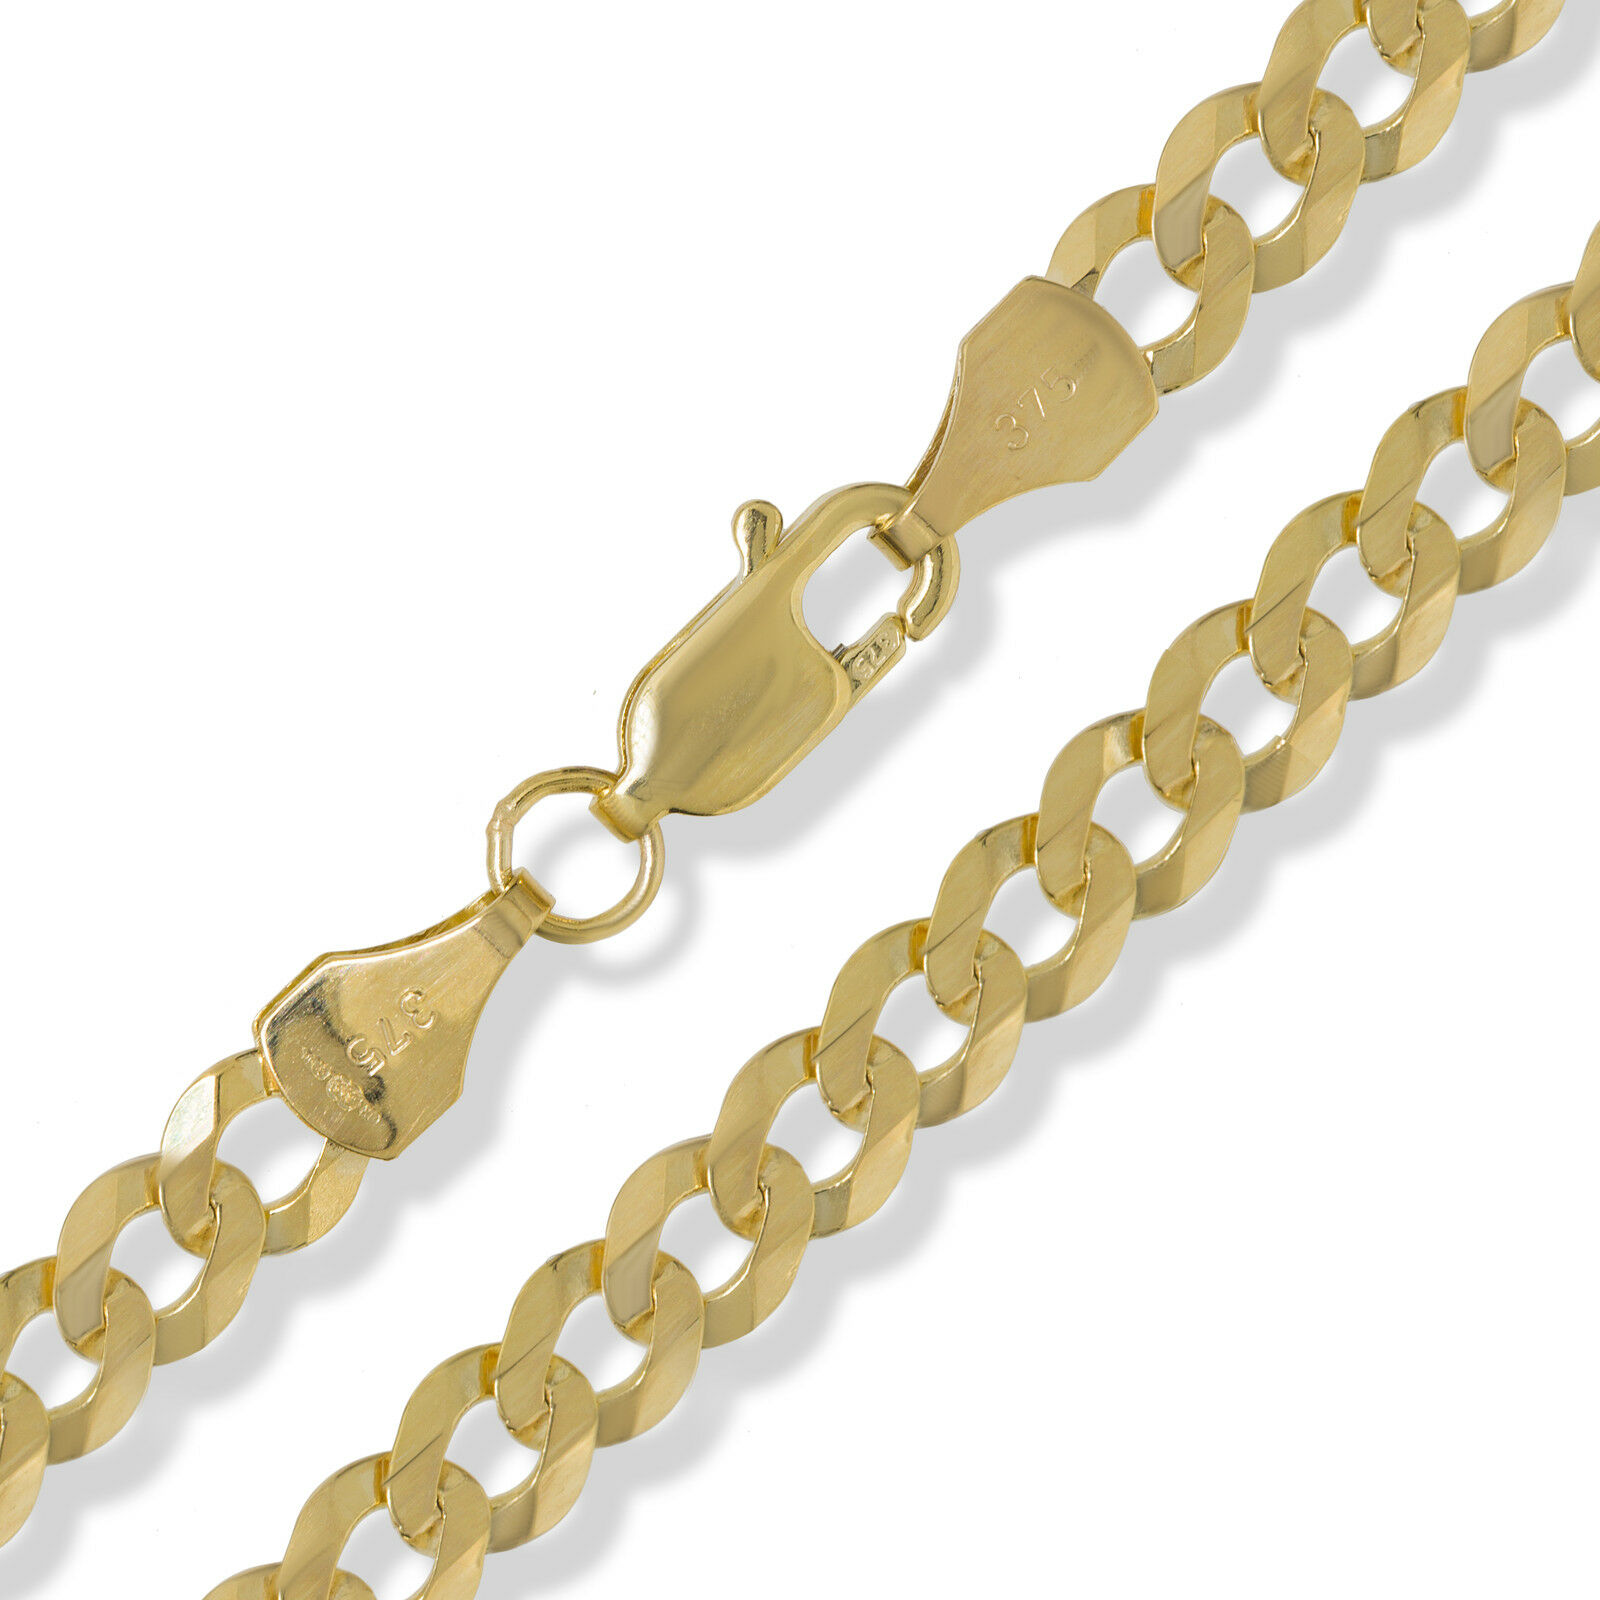 e5f534cf6c09e 9CT GOLD CURB CHAIN DIAMOND CUT FLAT TRACE ROPE FIGARO D/C NECKLACE  BRACELET BOX